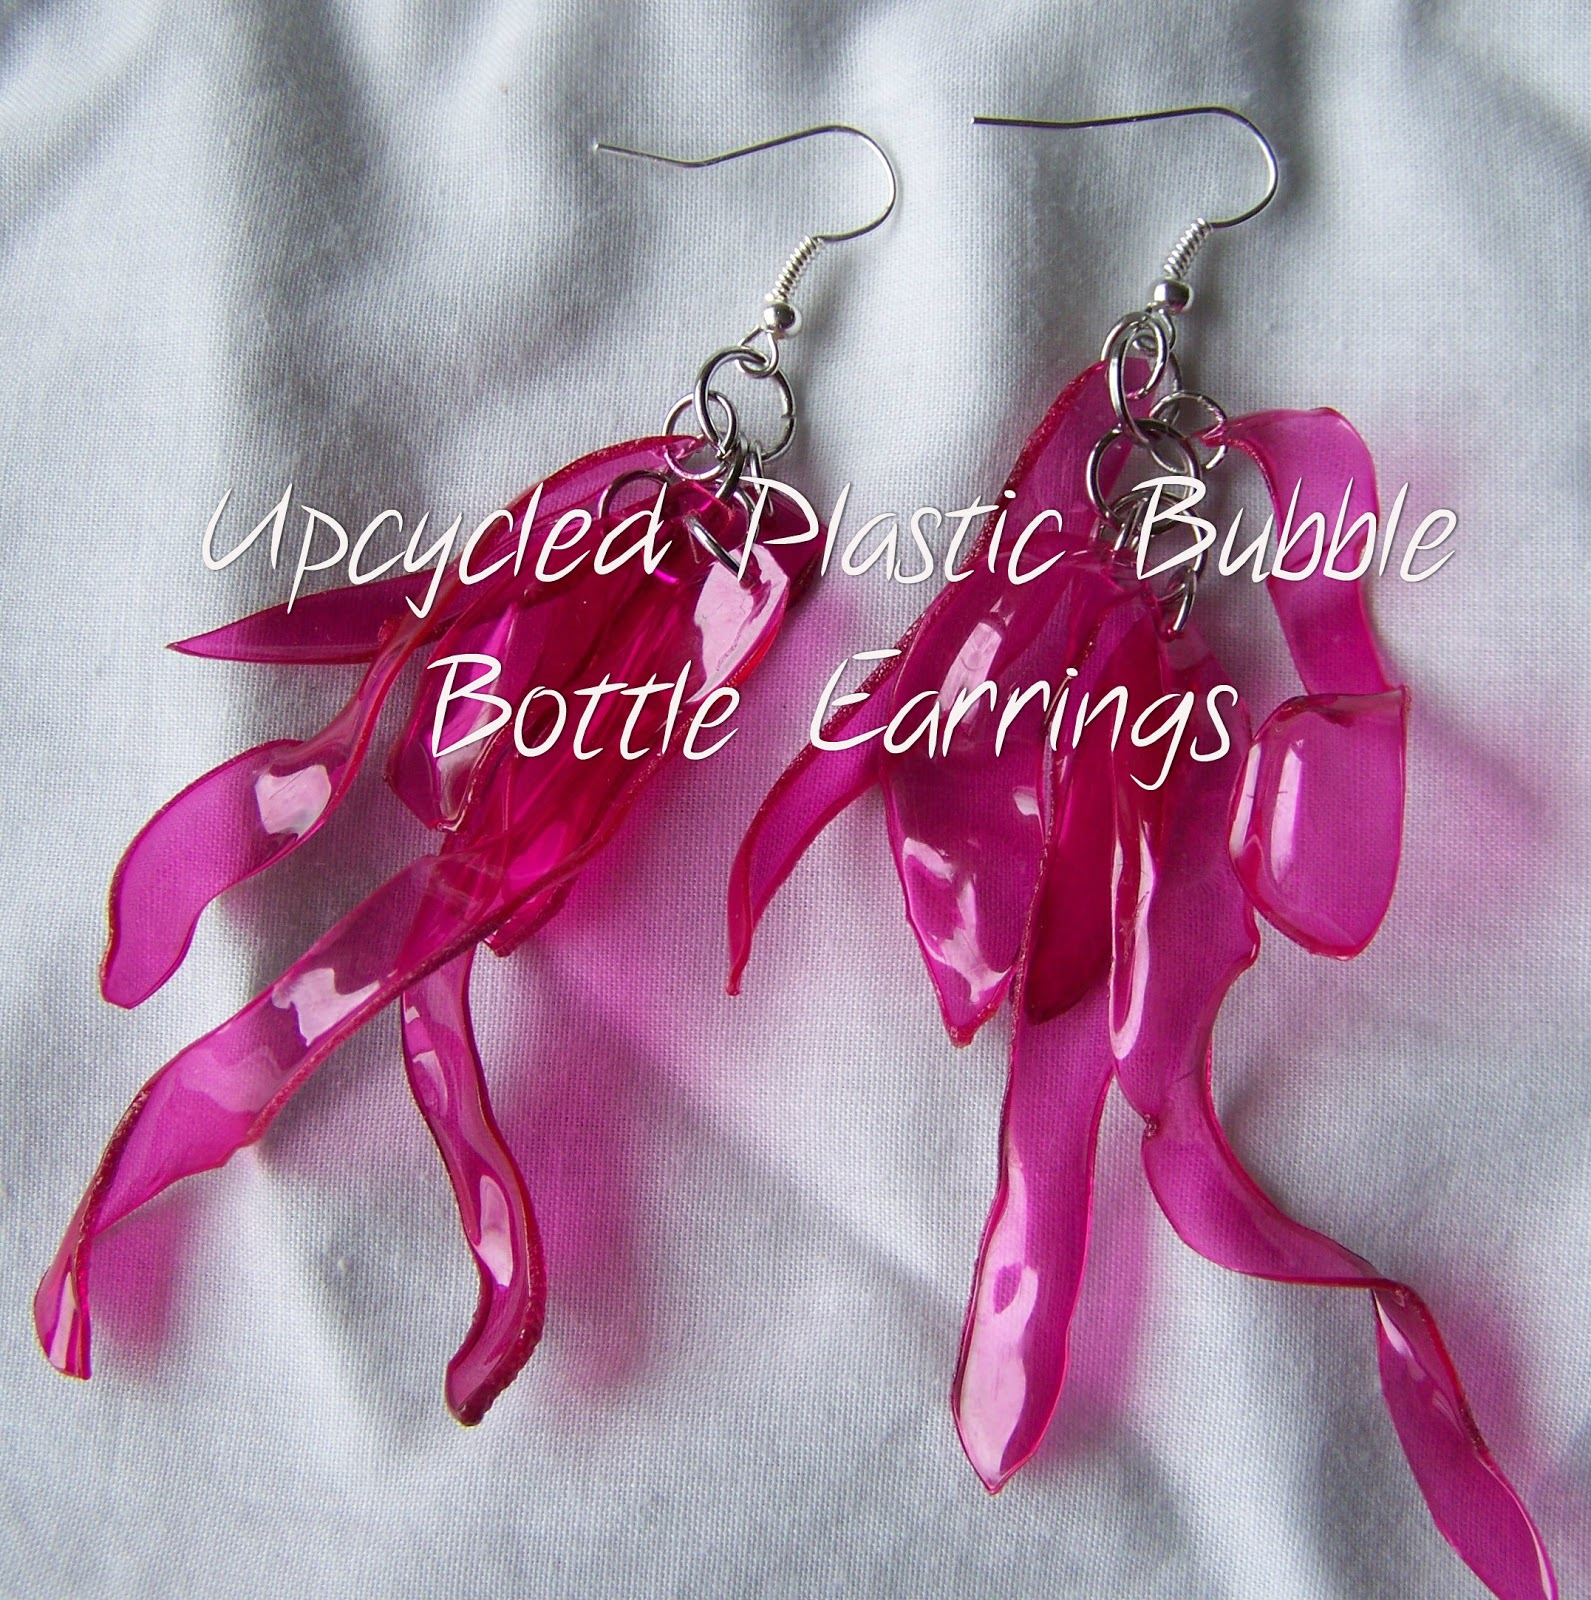 Poppy juice jewelry made from recycled plastic bottles - Plastic bottle jewelry making ...